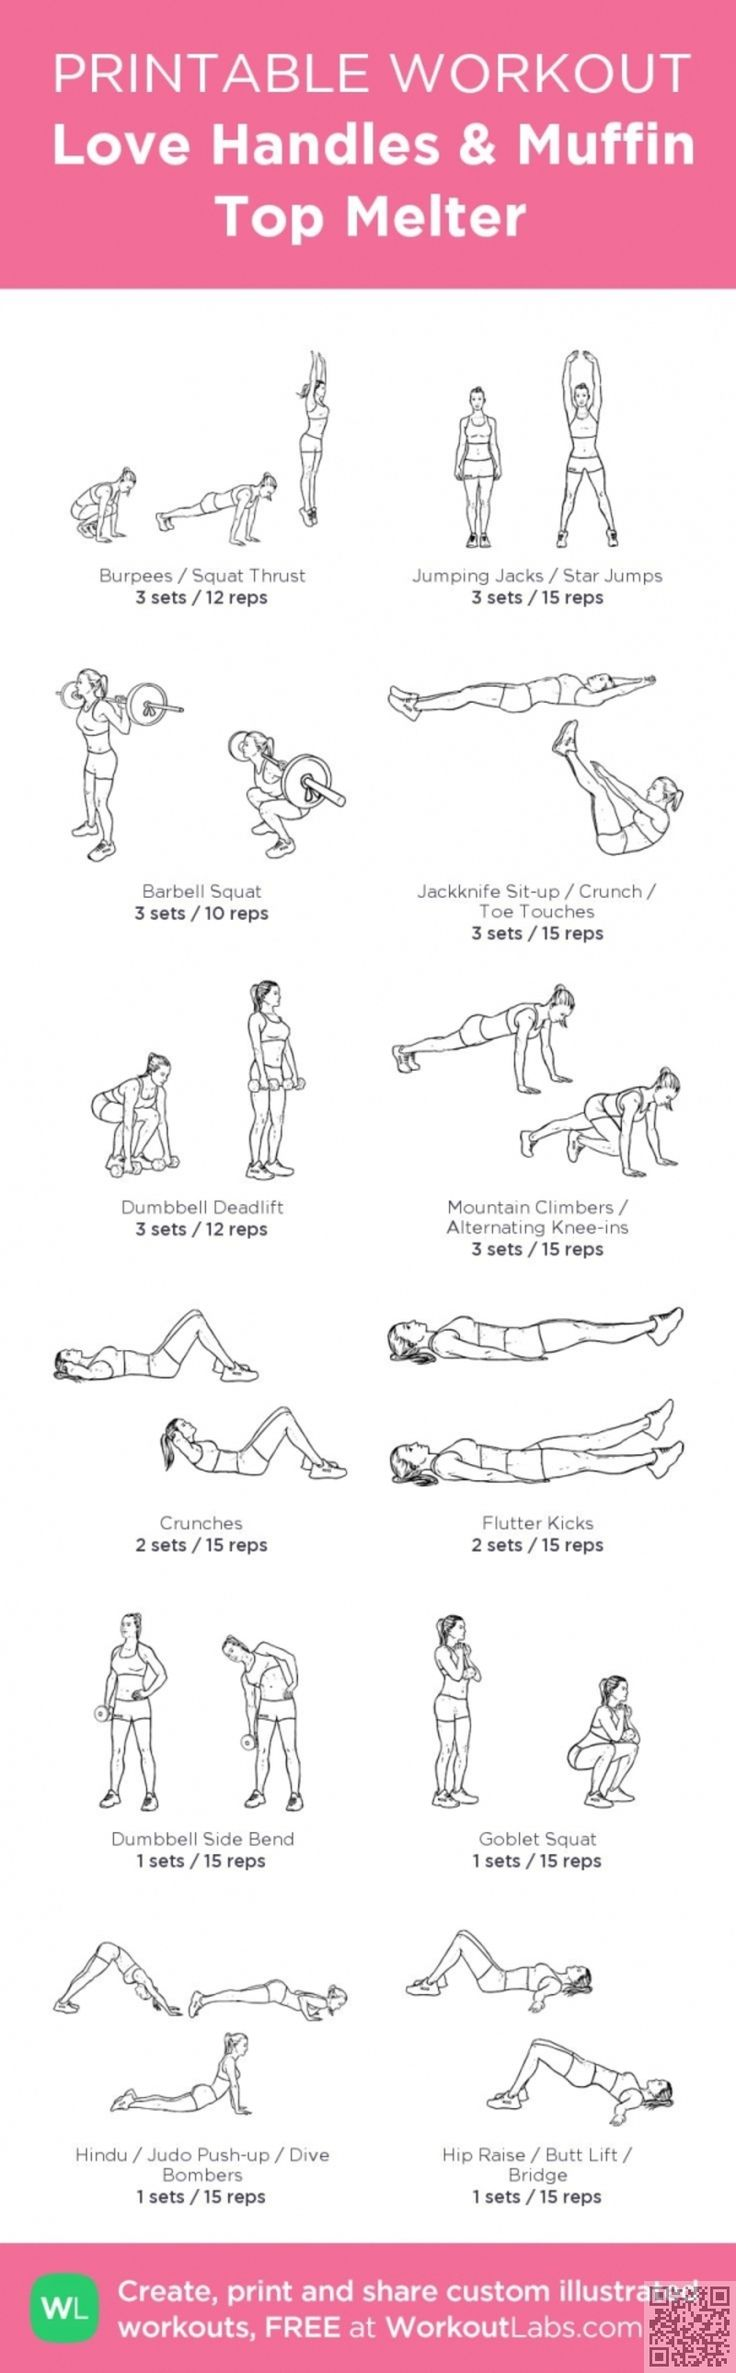 2. Love #Handles & Muffin Top Melter - #Loathe Your Love Handles? #These 26 Exercises Can #Banish Them for Good! → #Fitness #Muffin